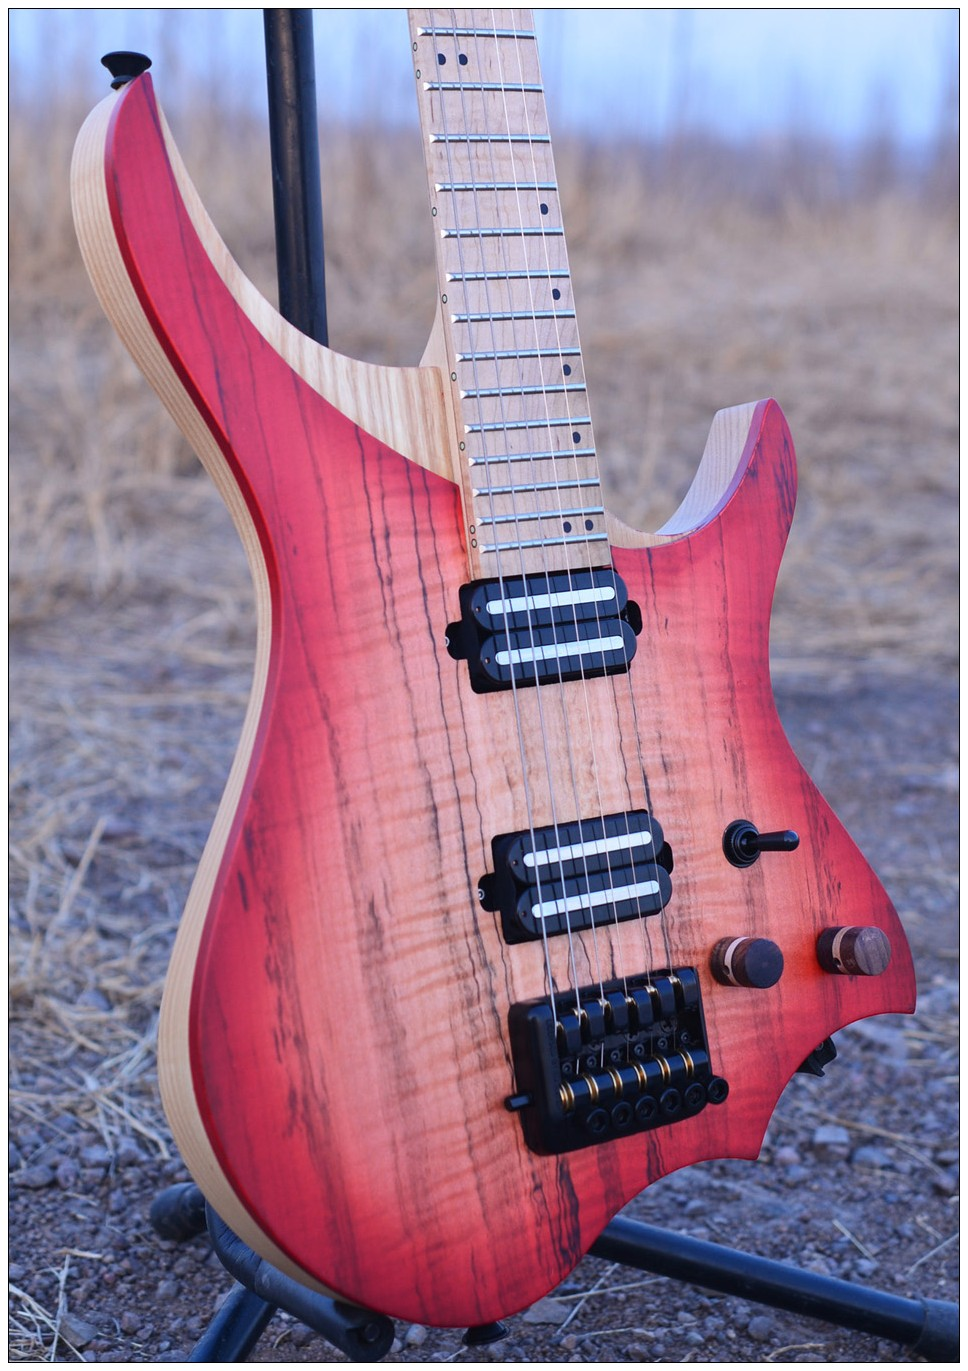 Headless Electric Guitar style Model red spalted curly maple top Flame maple Neck in stock free shipping